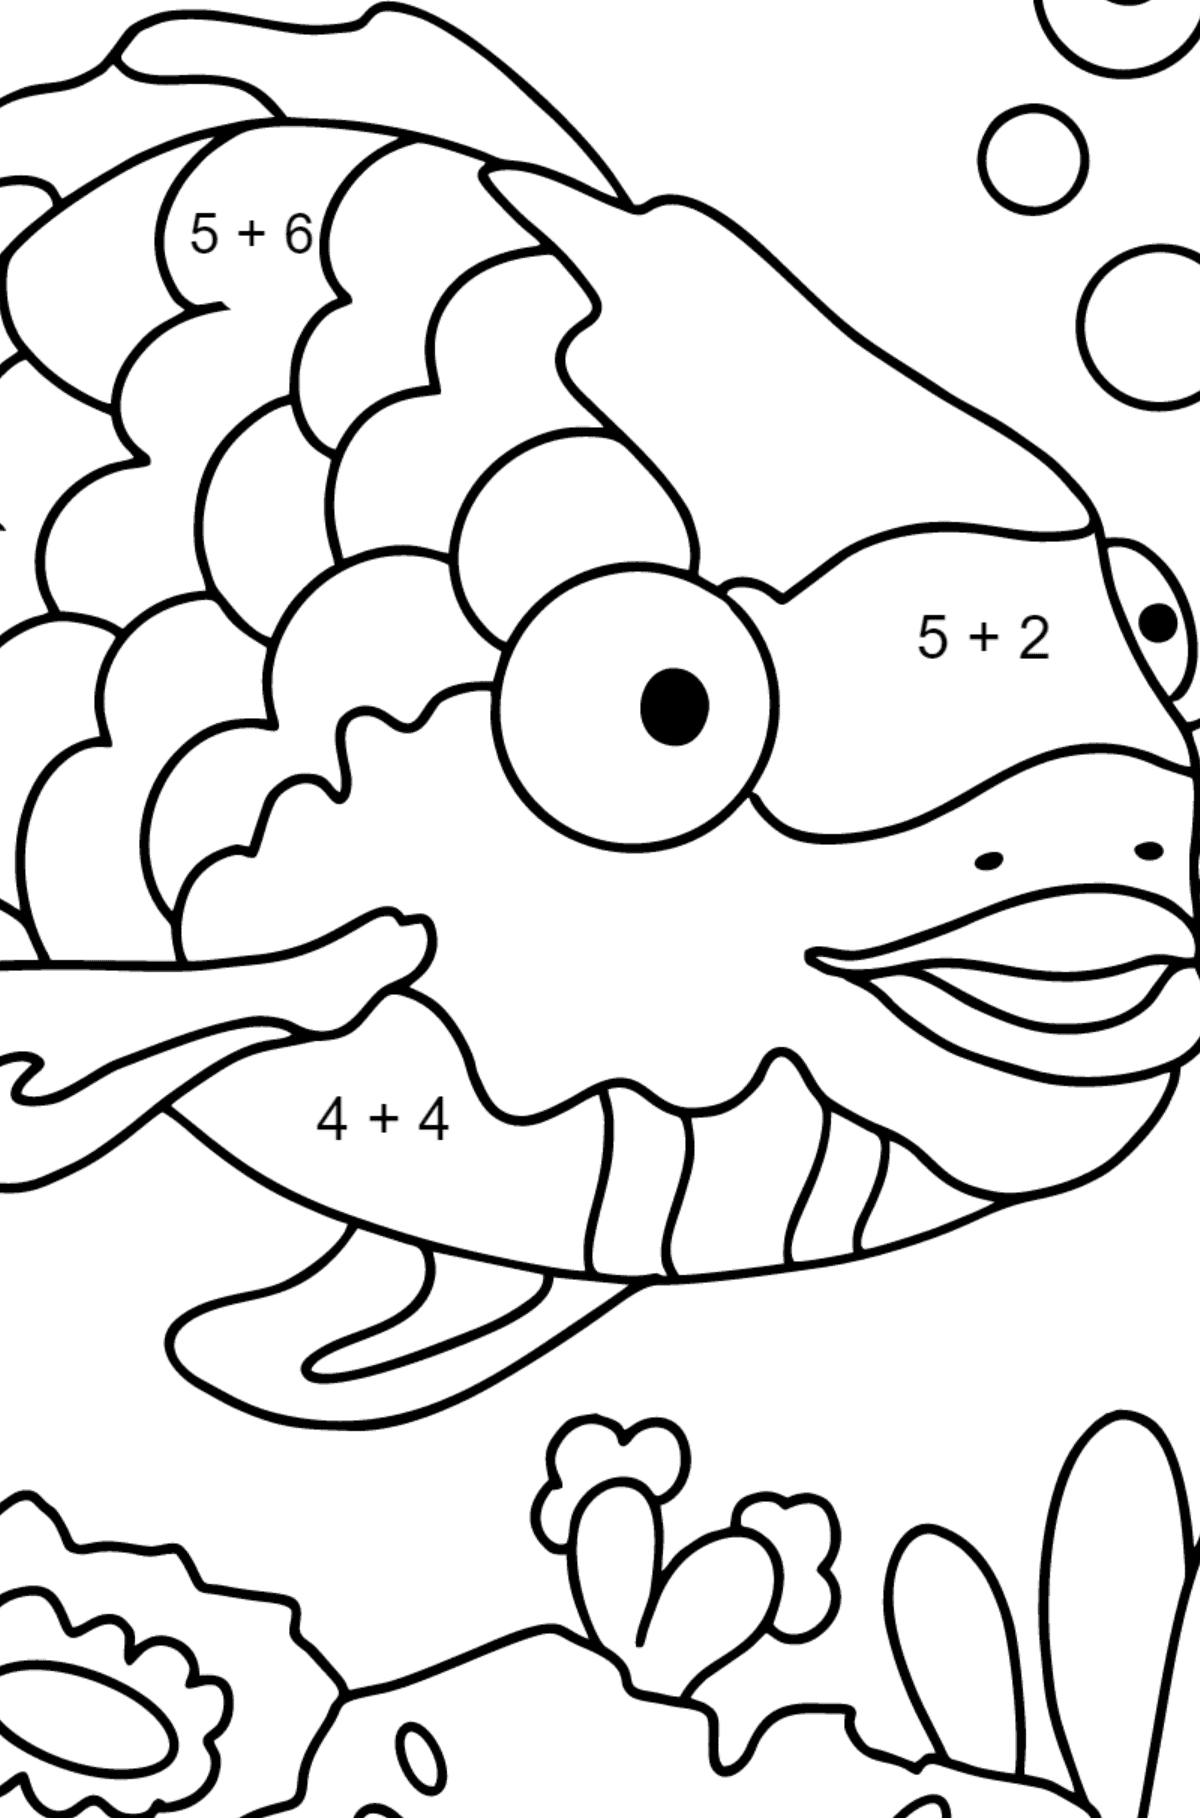 Coloring Page - A Fish with Multicolored Scales - Math Coloring - Addition for Kids